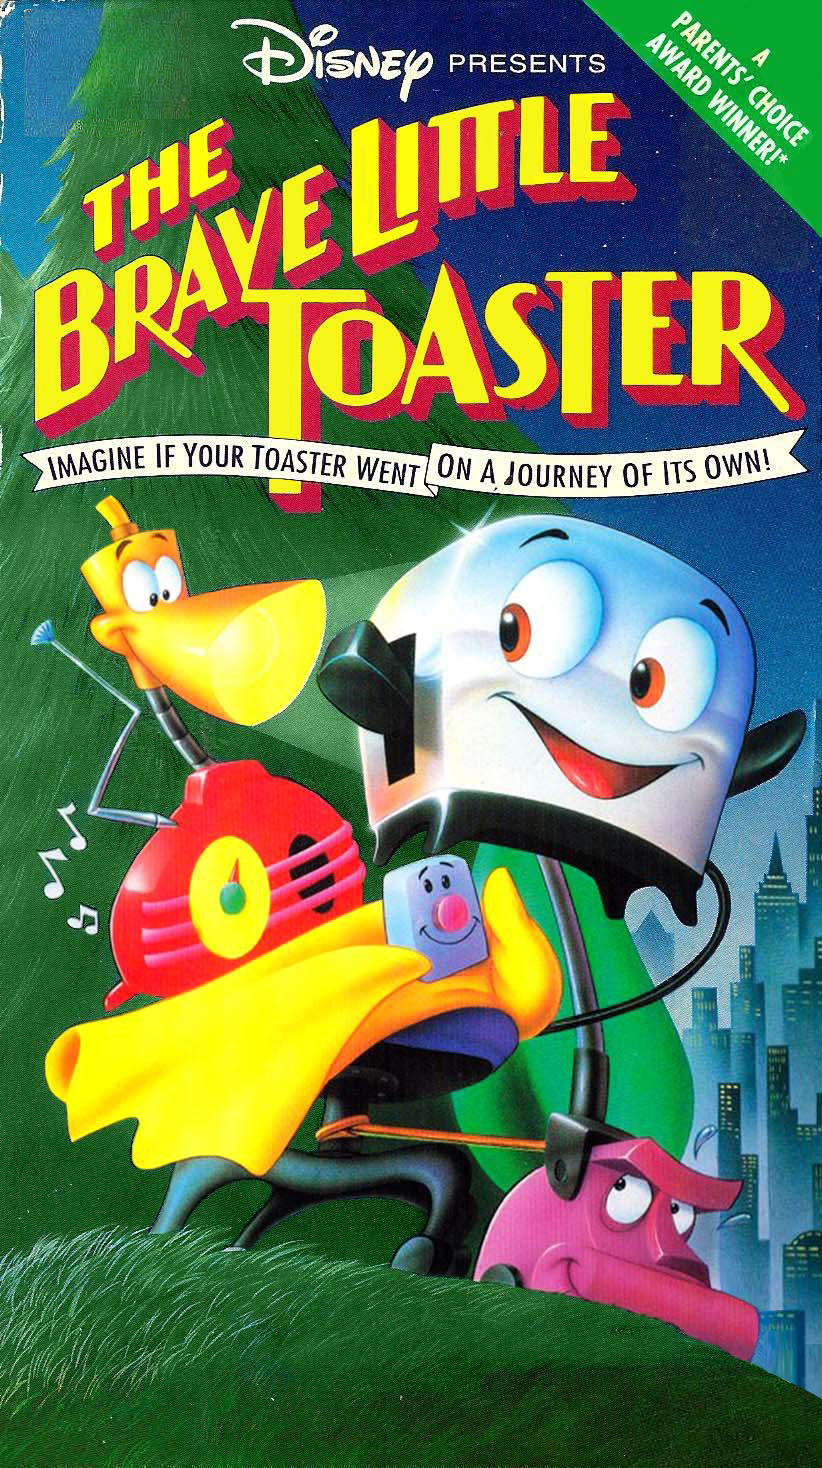 The Brave Little Toaster (video)